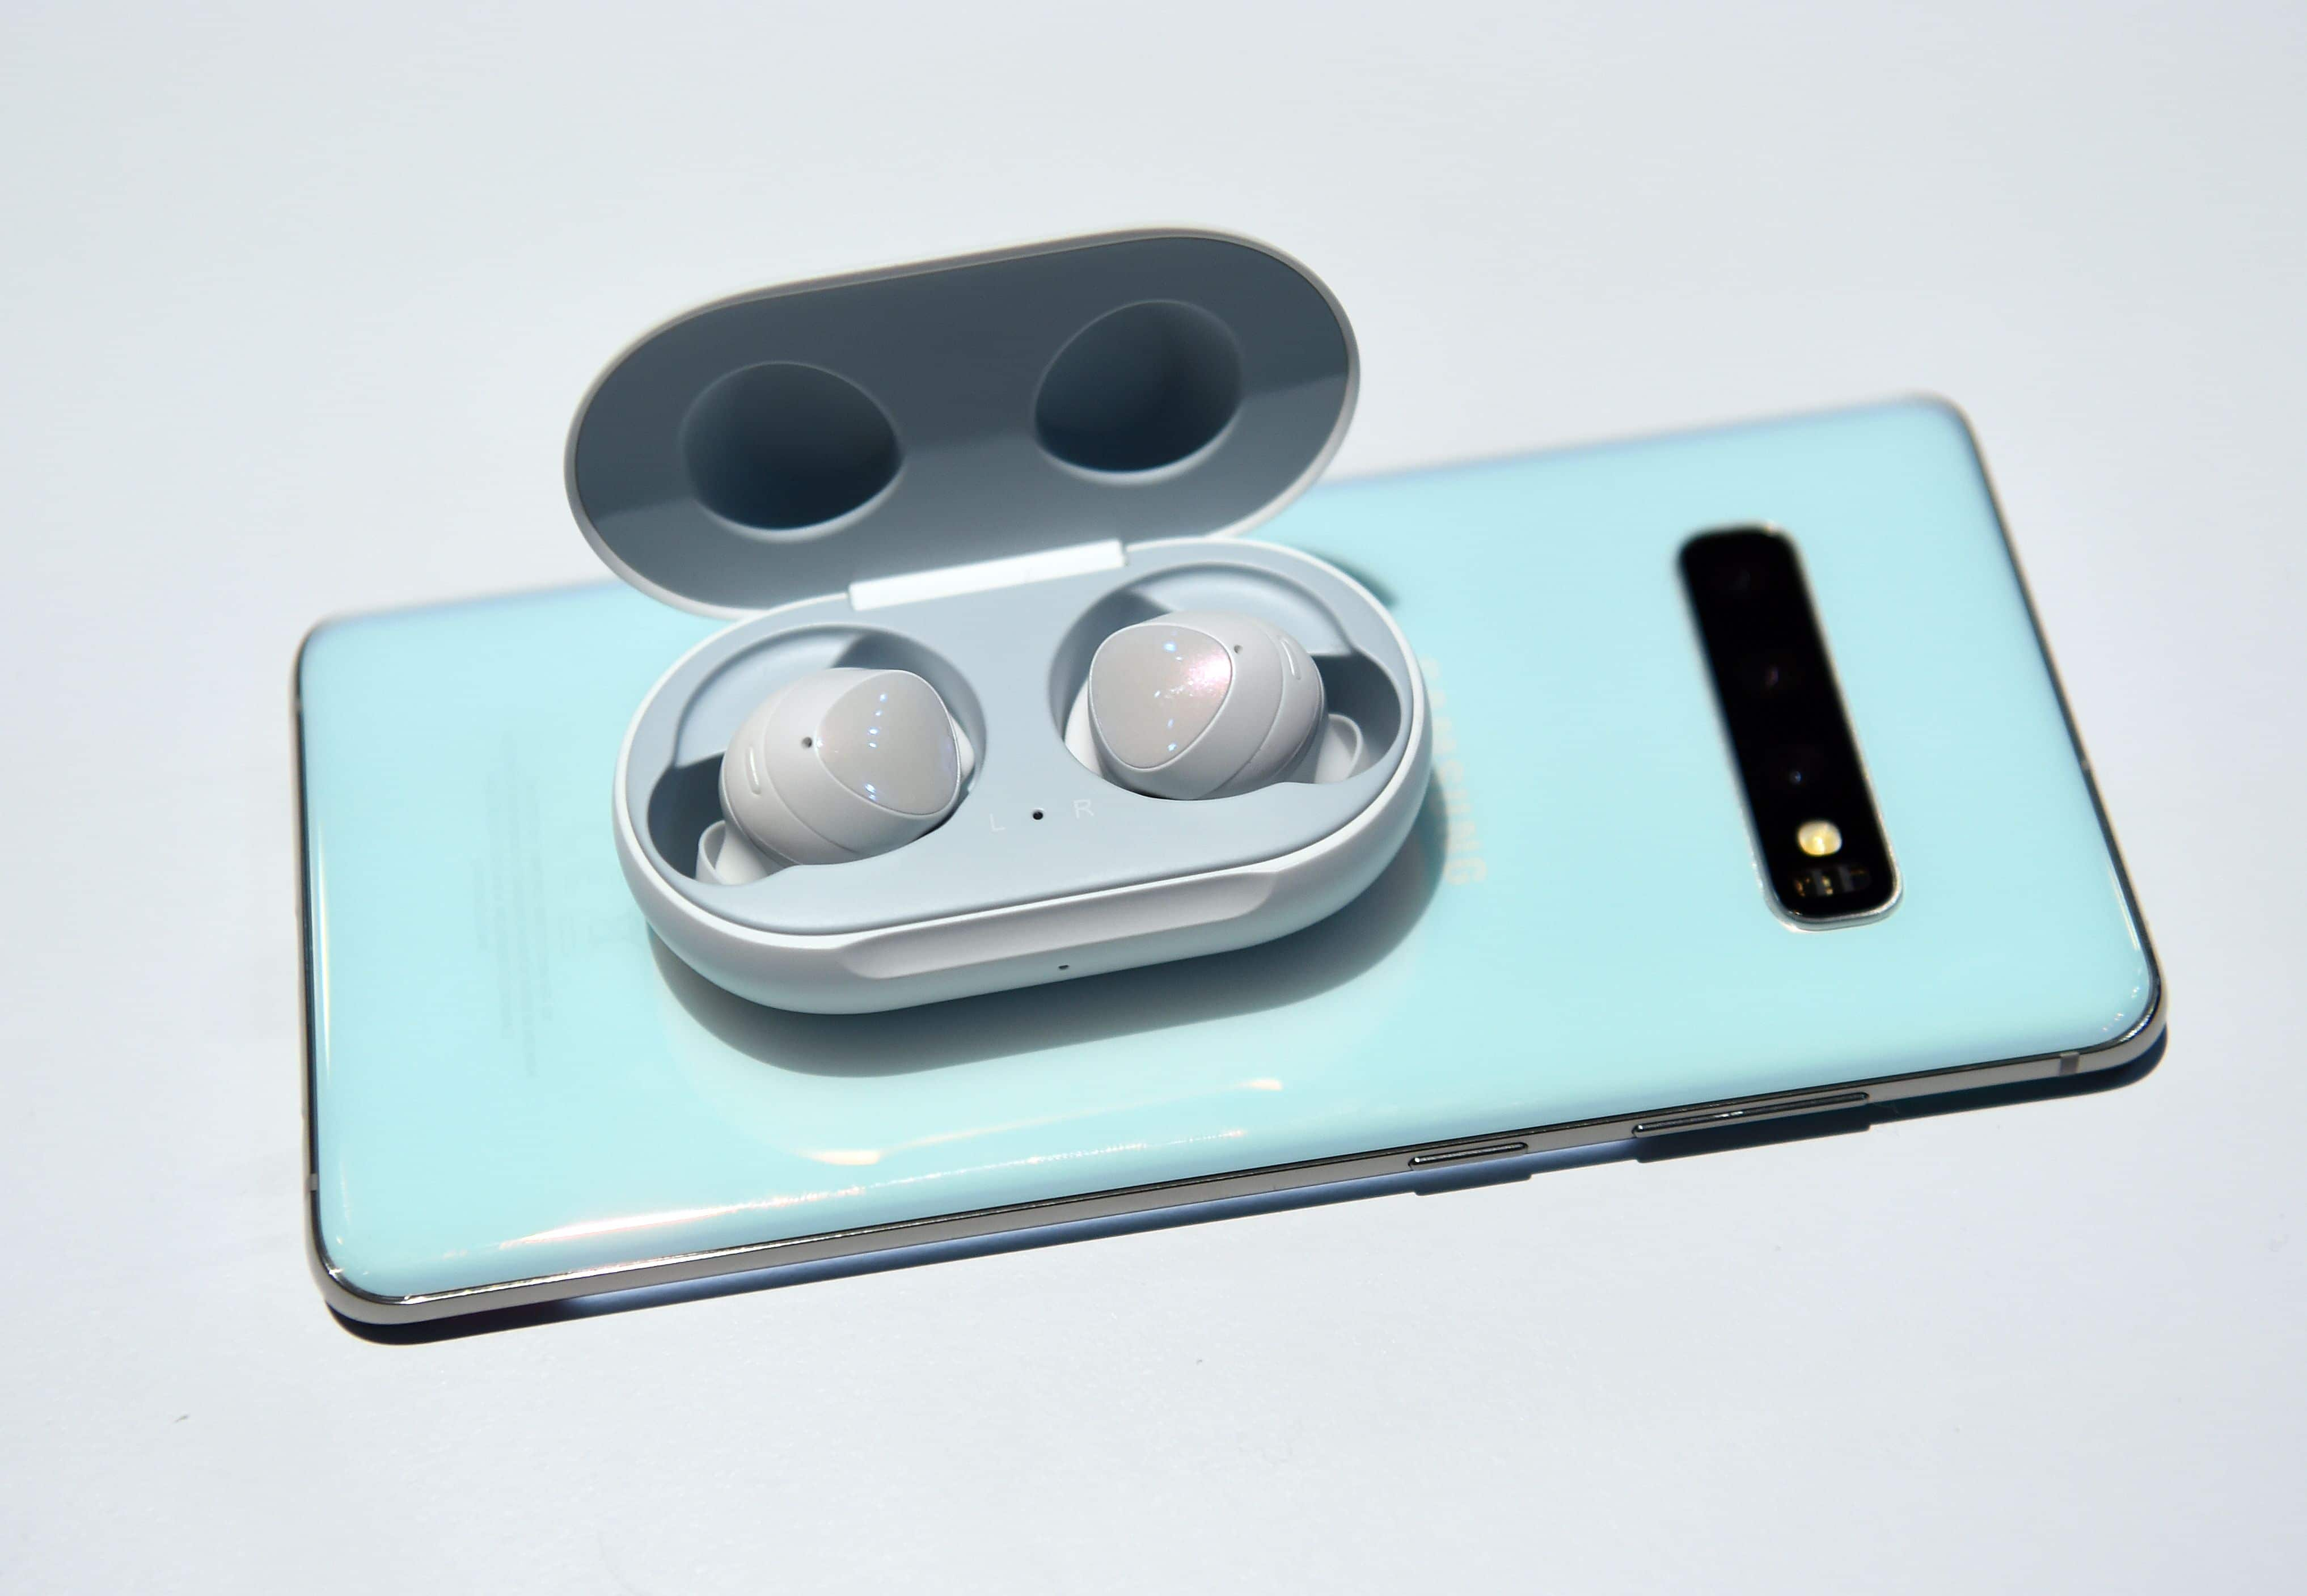 Except Galaxy S10e, all the new Galaxy S10 variants have the reverse wireless charging functionality which allows them to wirelessly charge other compliant devices. In this image Galaxy Buds charge wirelessly atop an S10. The Galaxy Buds directly rival Apple's Air Pods and offer six hours music playtime. They come with a charging case.  (AFP)